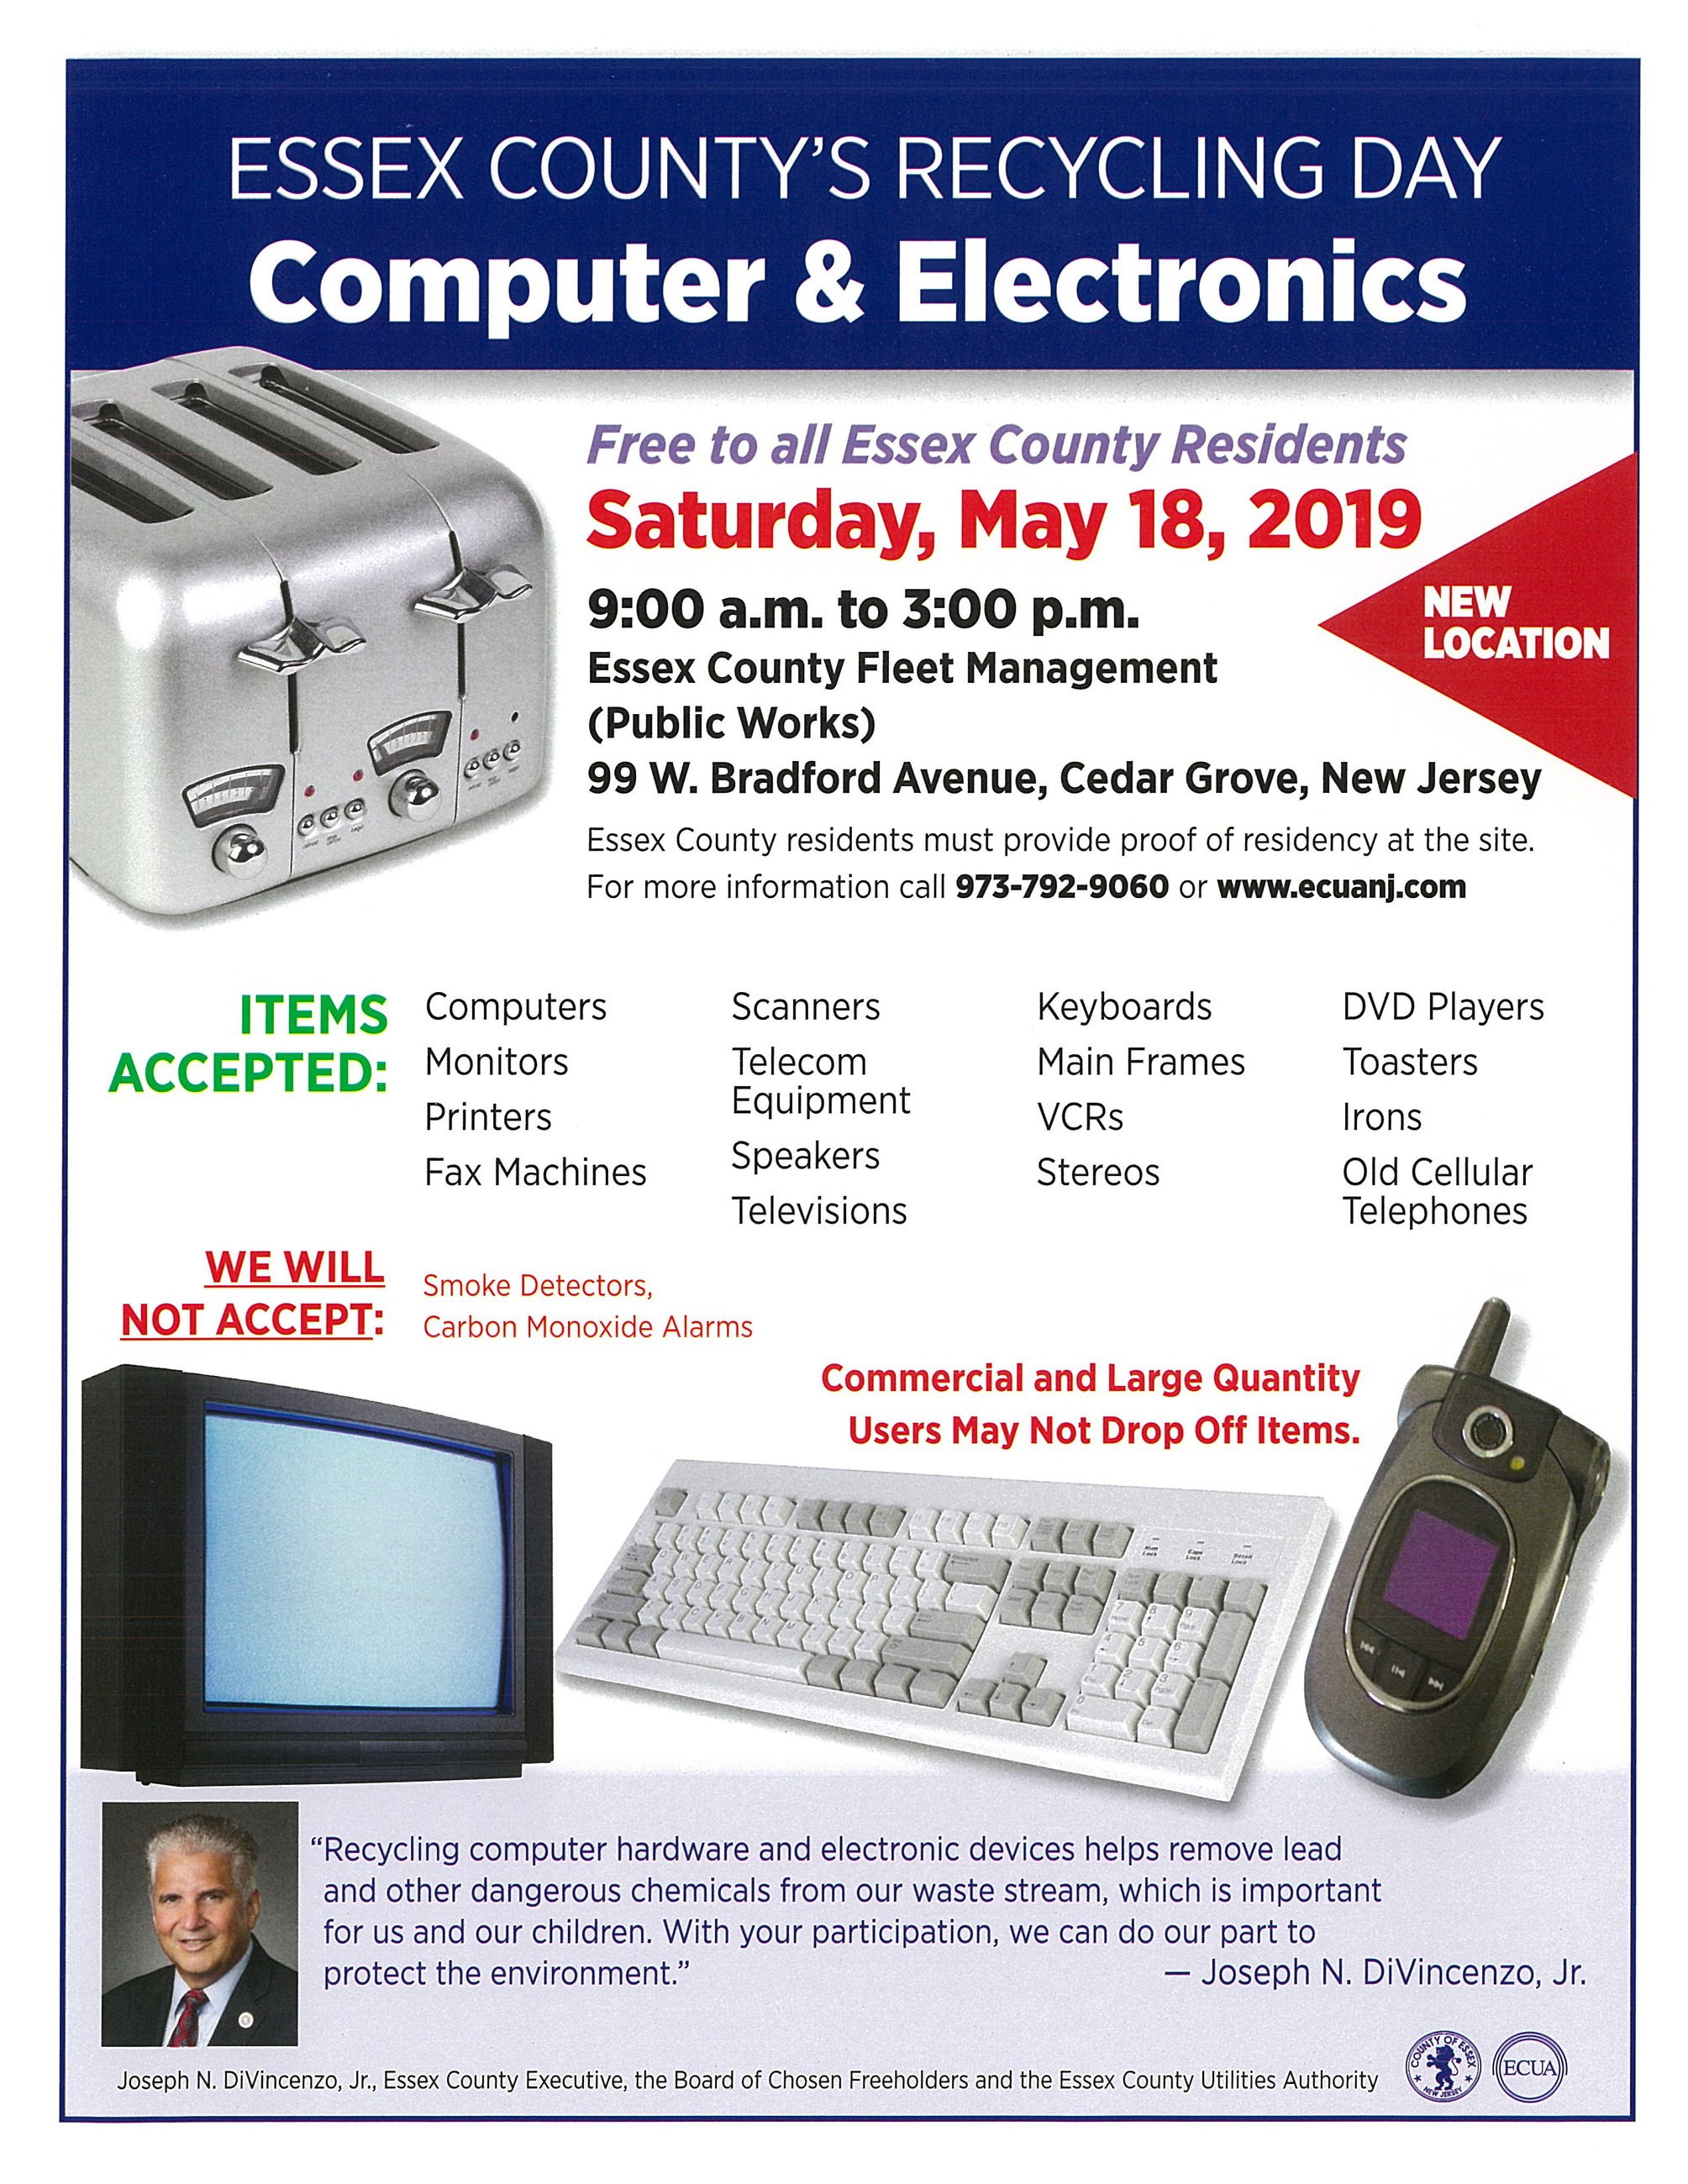 Flyer for Essex County Computer & Electronics Recycling Day, May 18, 2019. View www.ecuanj.com for d